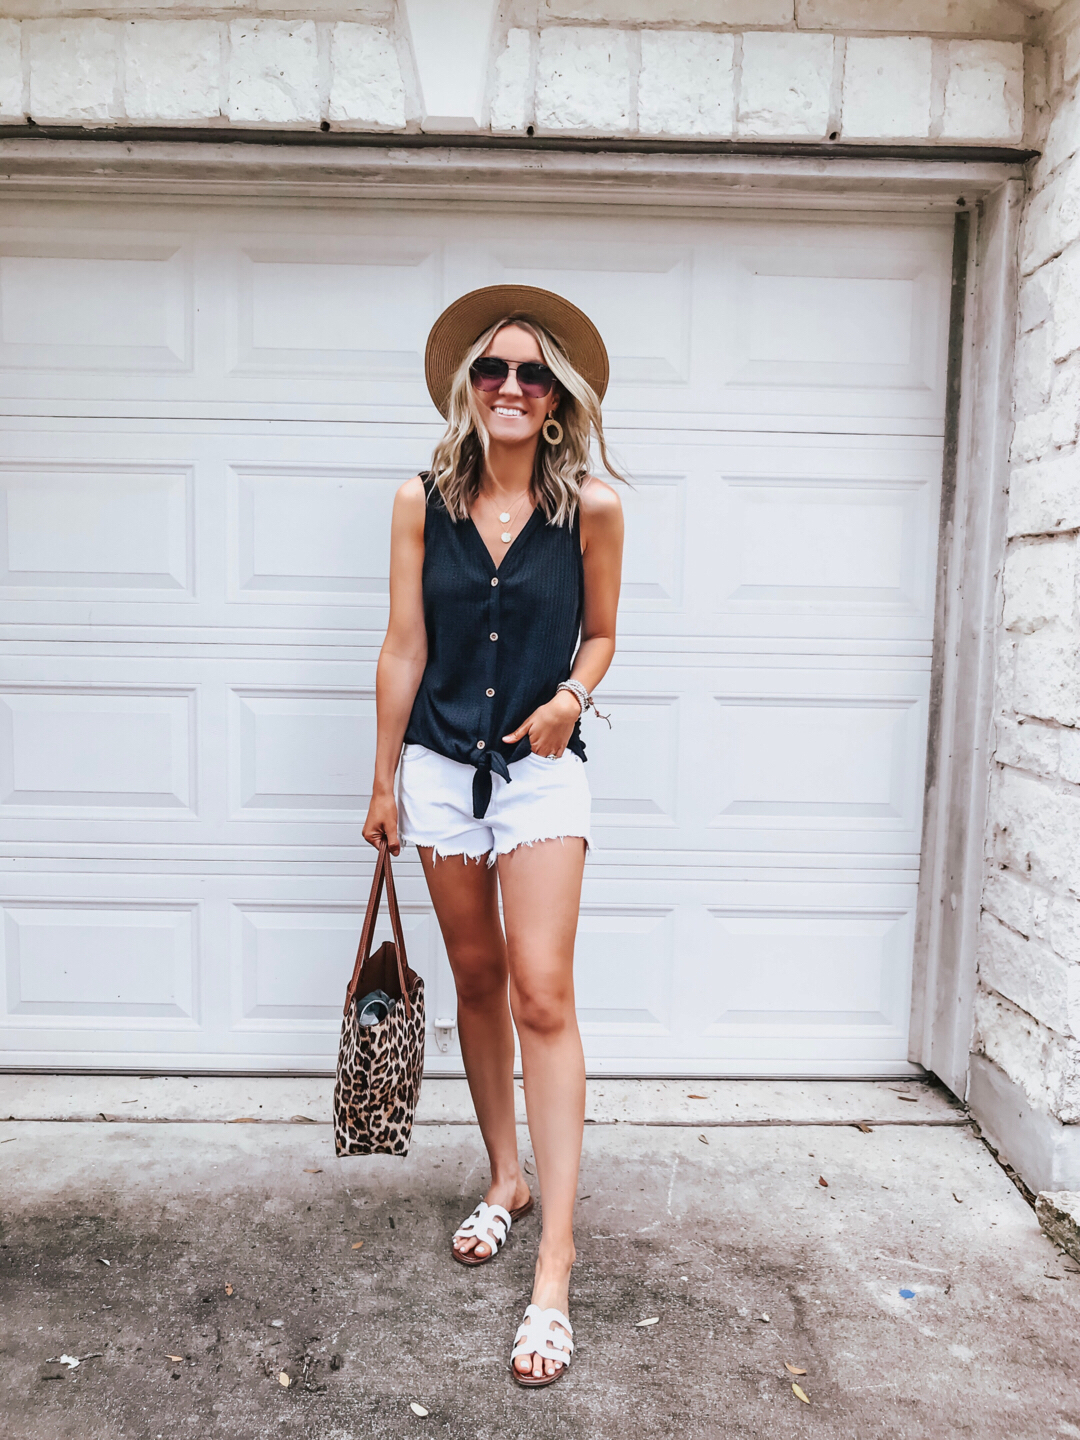 c11f7218e750 Life By Lee - Austin Fashion Blogger - Austin Mommy and Lifestyle ...